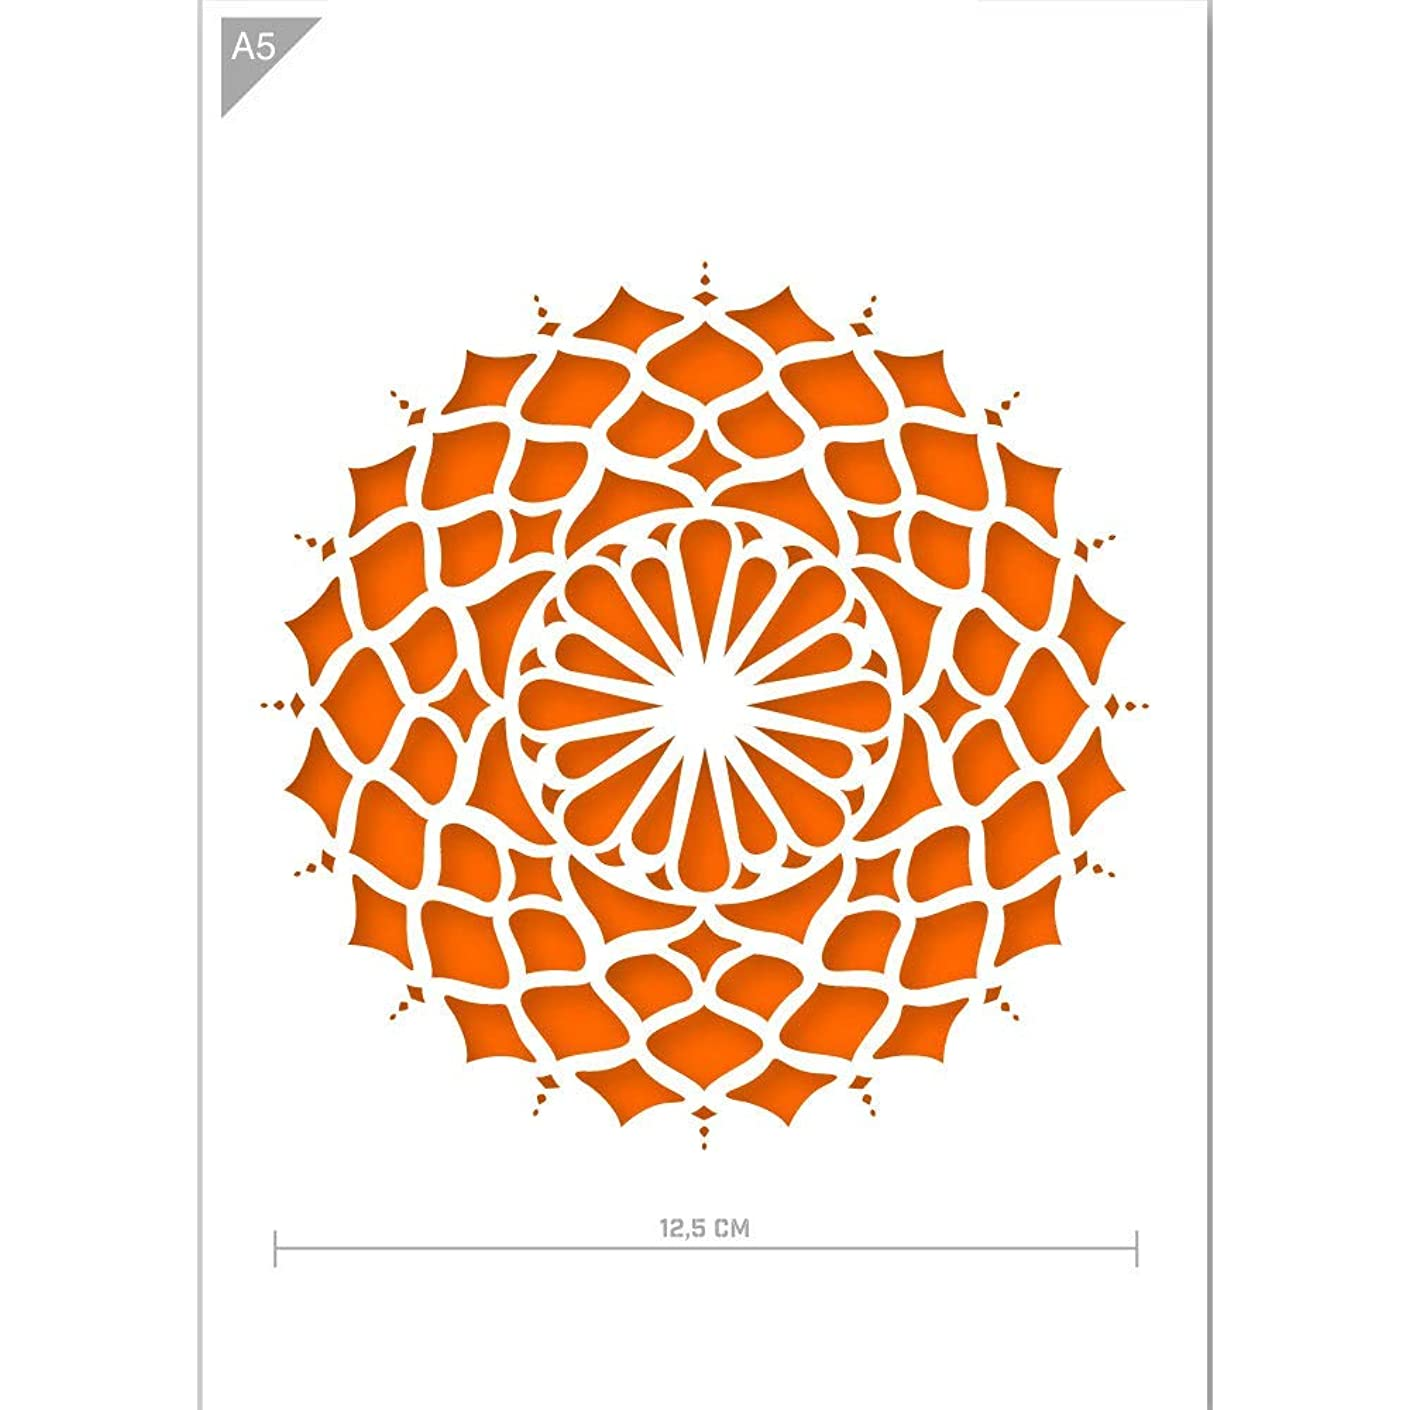 Qbix Mandala Stencil - A5 Mandala Stencil for Furniture, Walls, Floors - Mandalas for DIY Home Decor - Mandala Stencil for Painting, Crafts, Arts, Baking, Crafts, Wall, Furniture